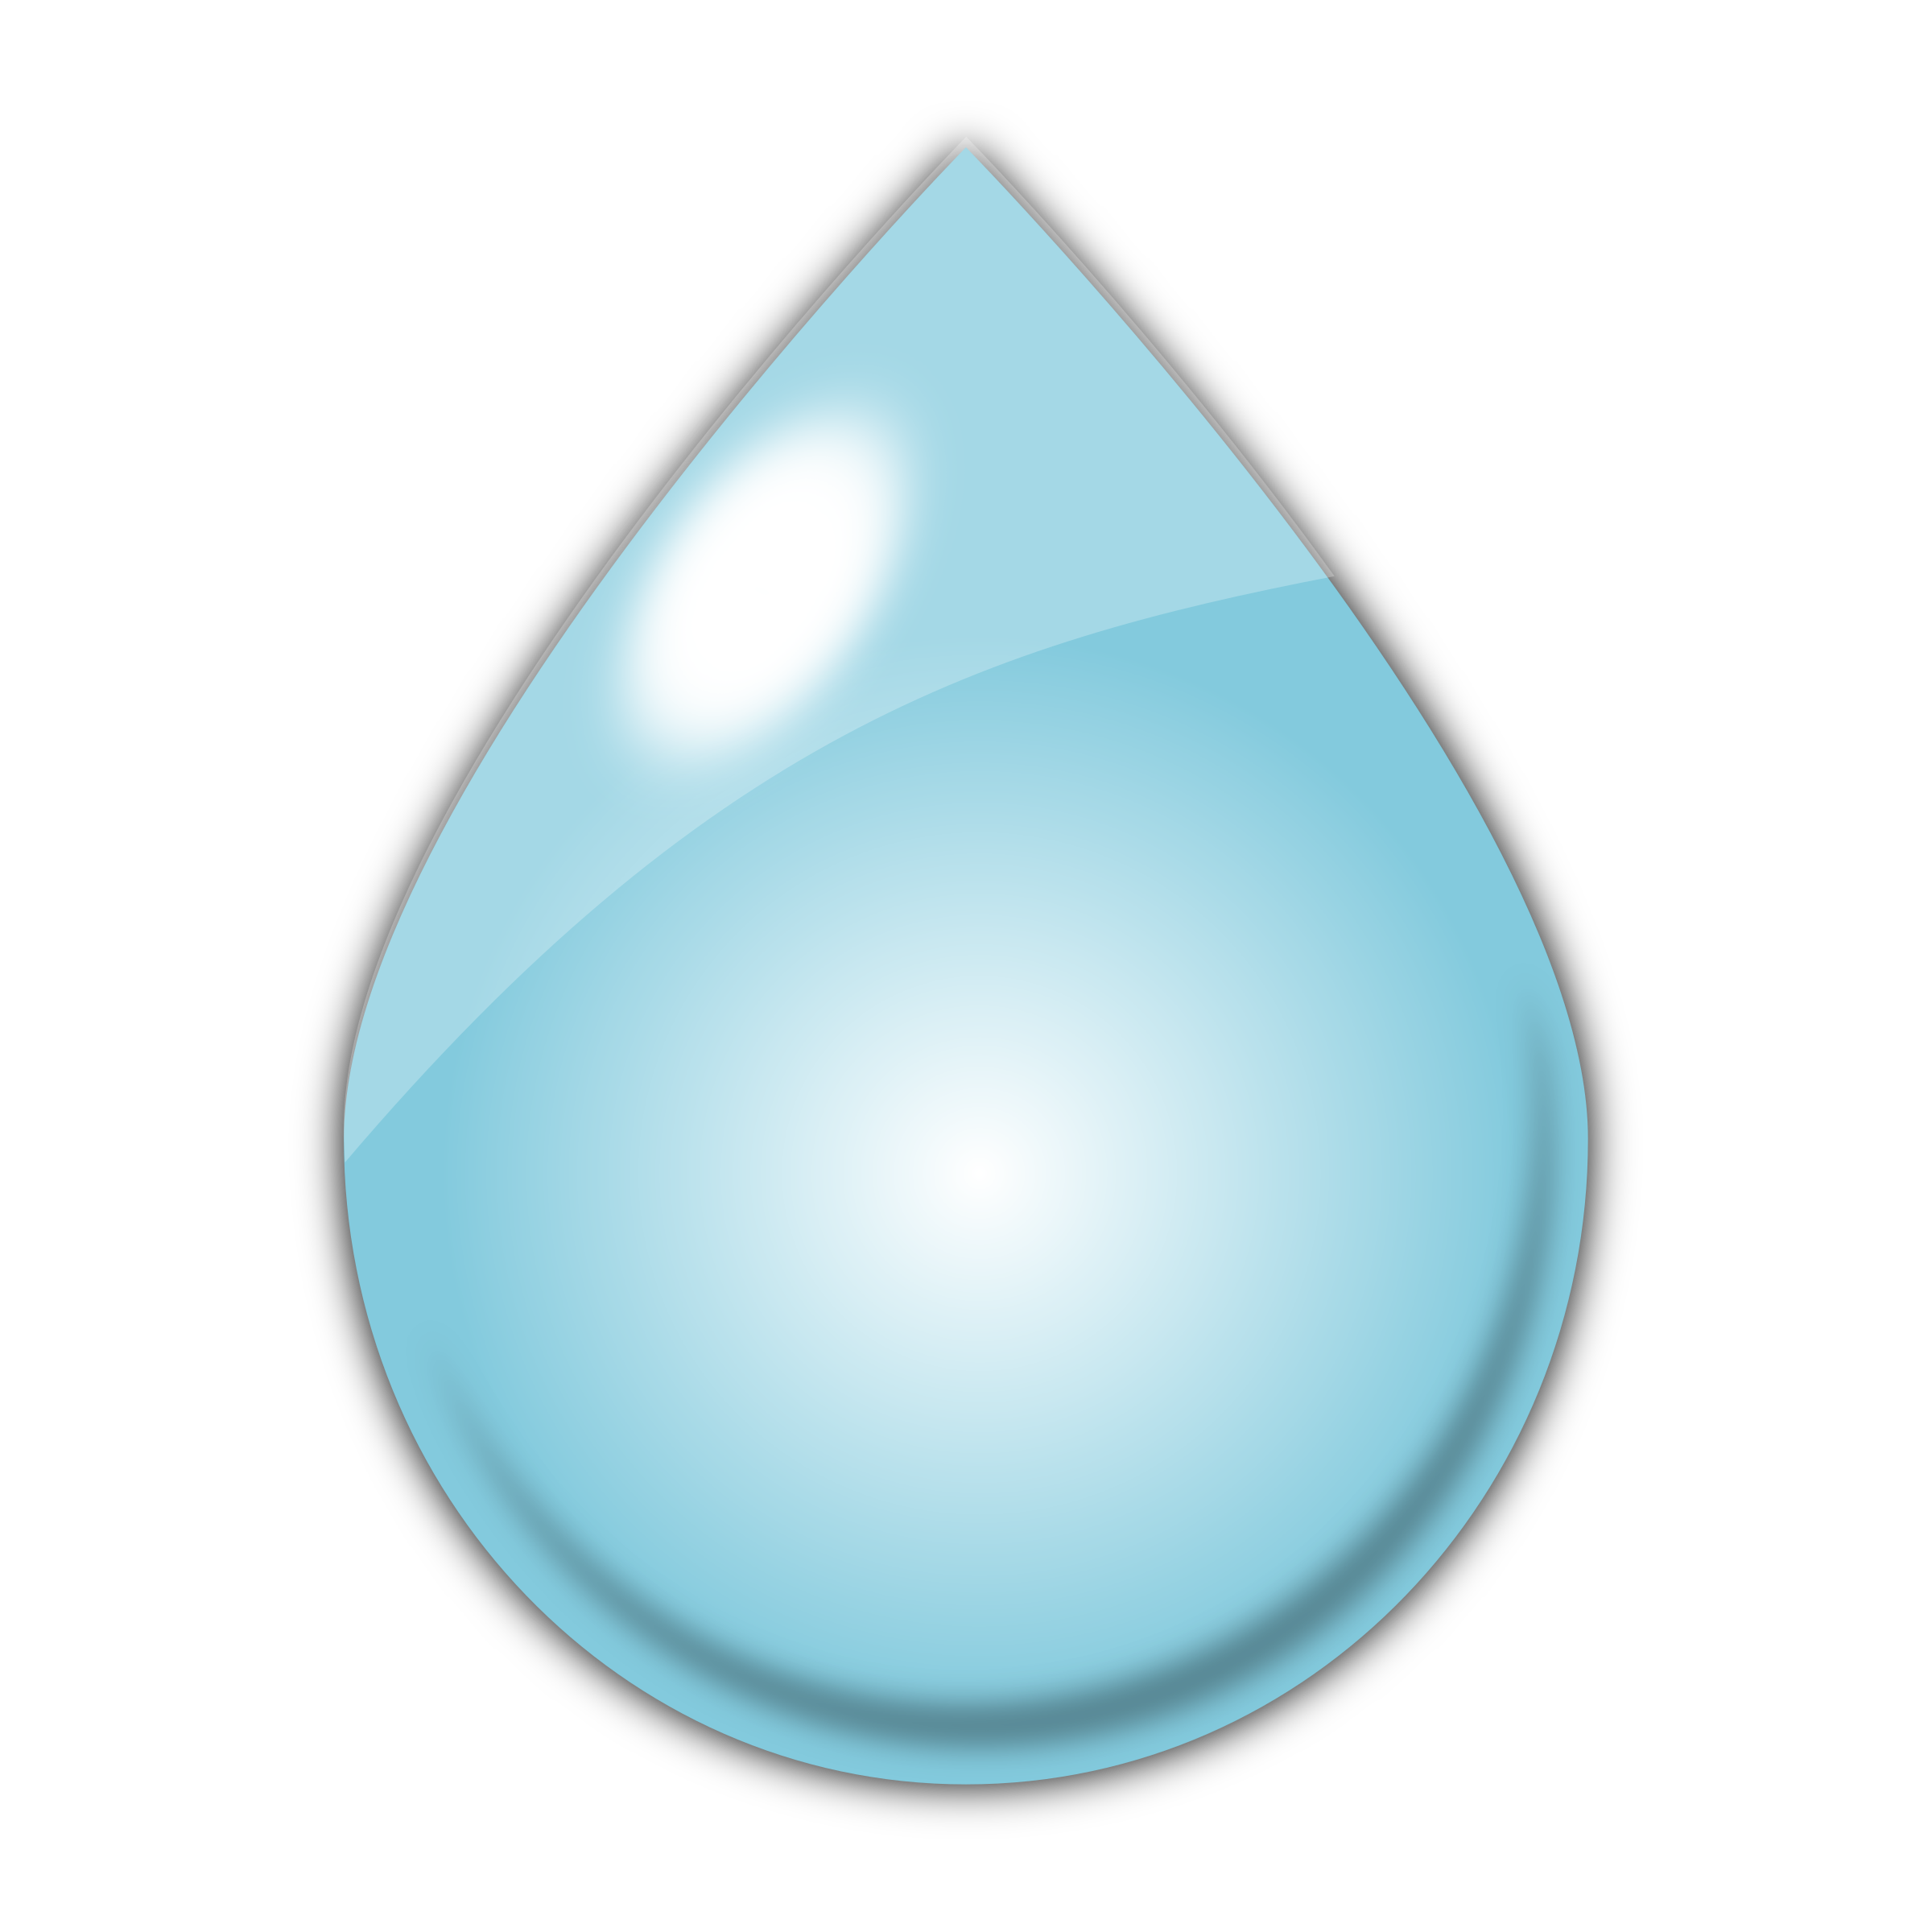 Drawings Of Raindrops - ClipArt Best